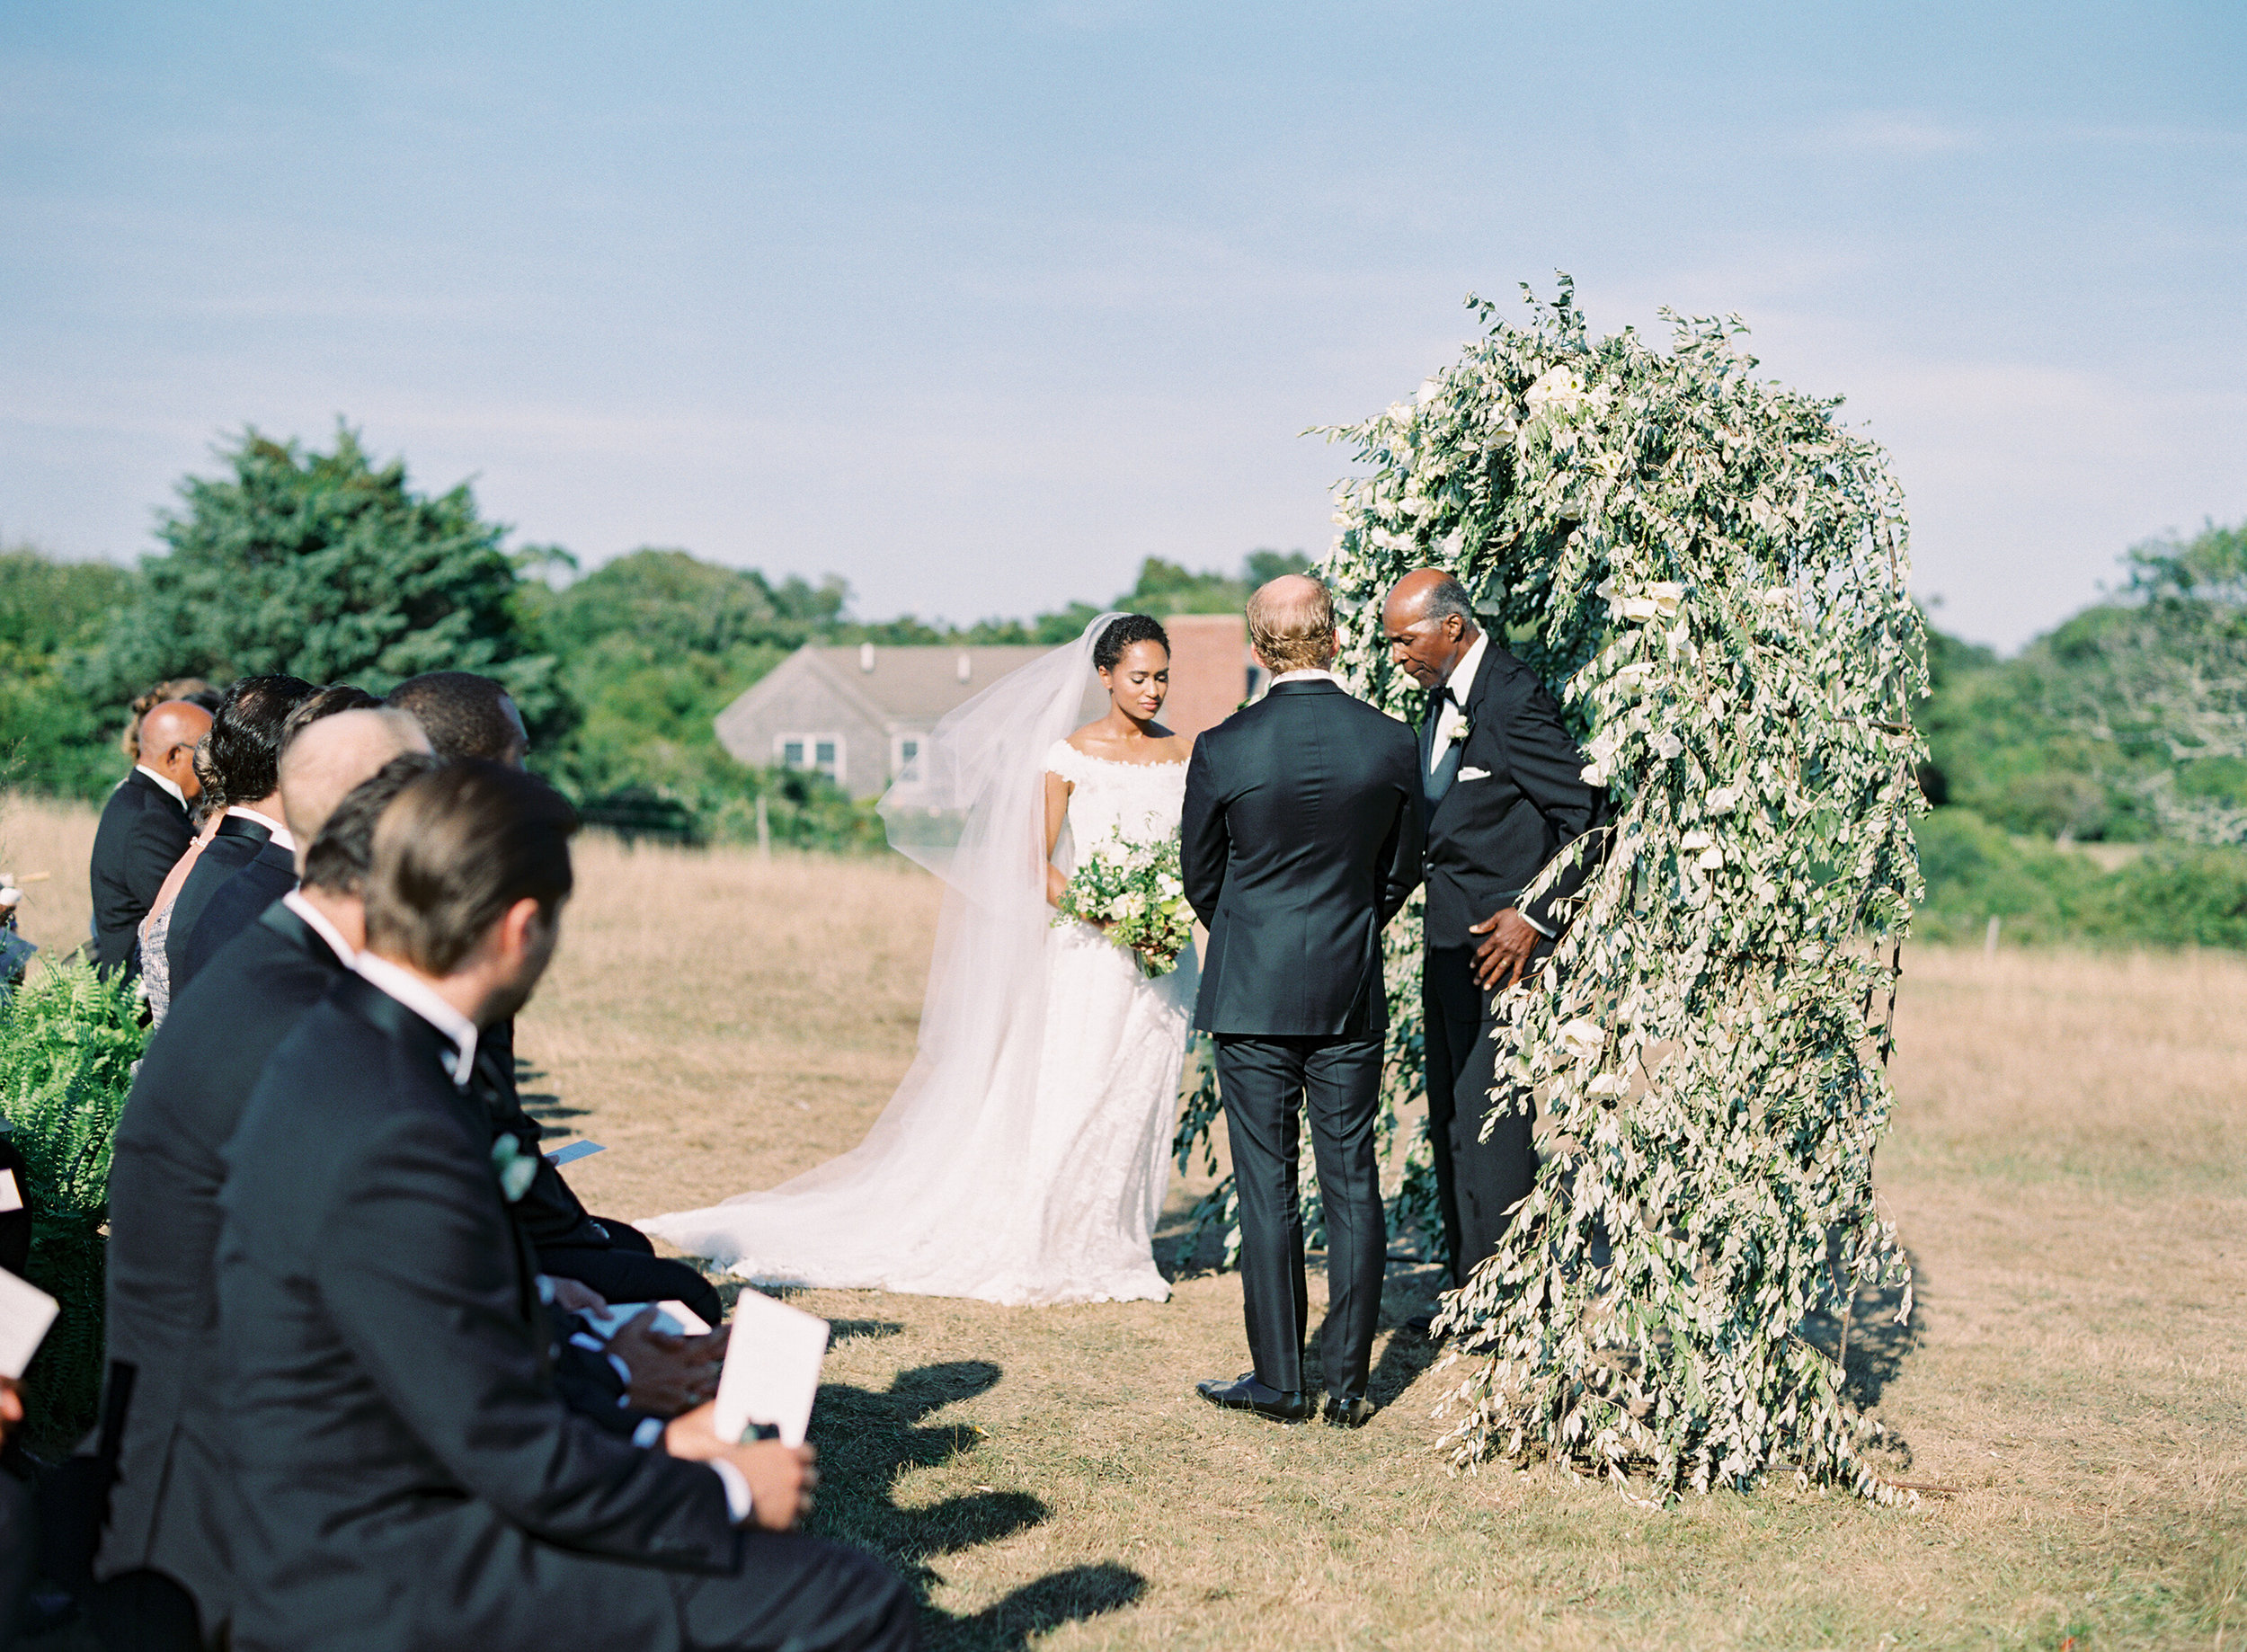 Marthas-Vineyard-Wedding-on-Martha-Stewart-552.jpg